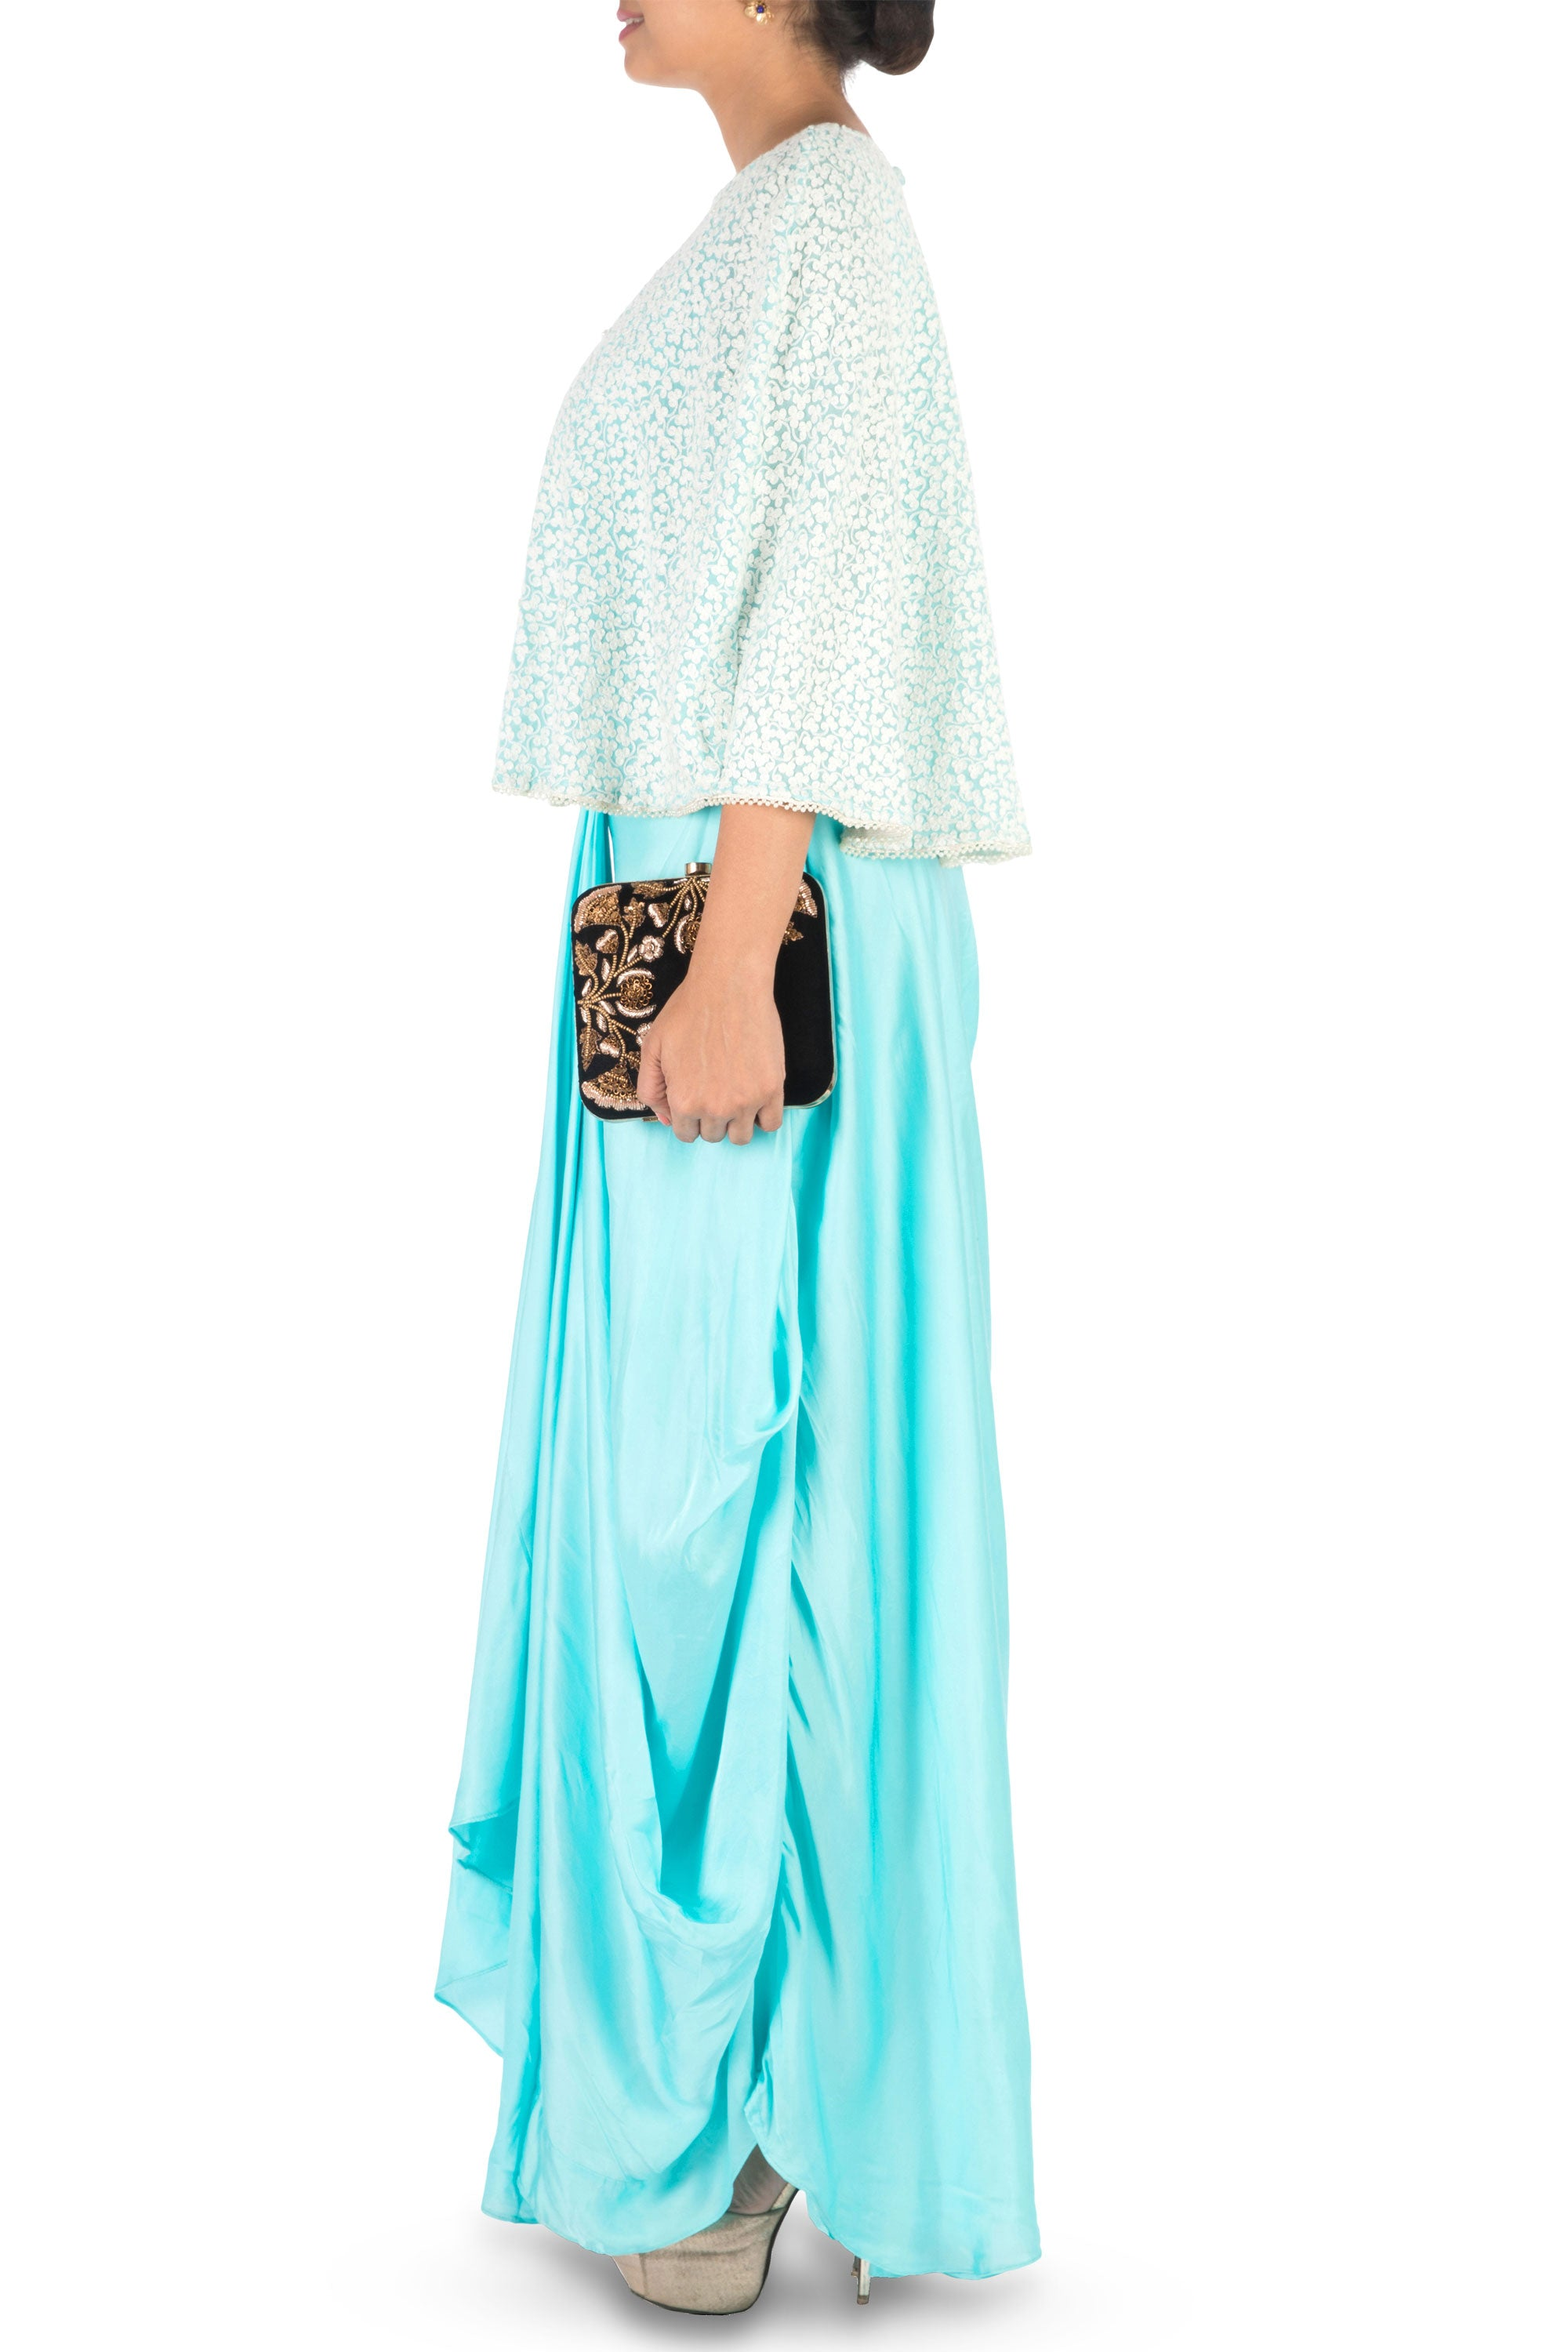 Hand Embroidered Sky Blue Drape Skirt & Cape Set Side